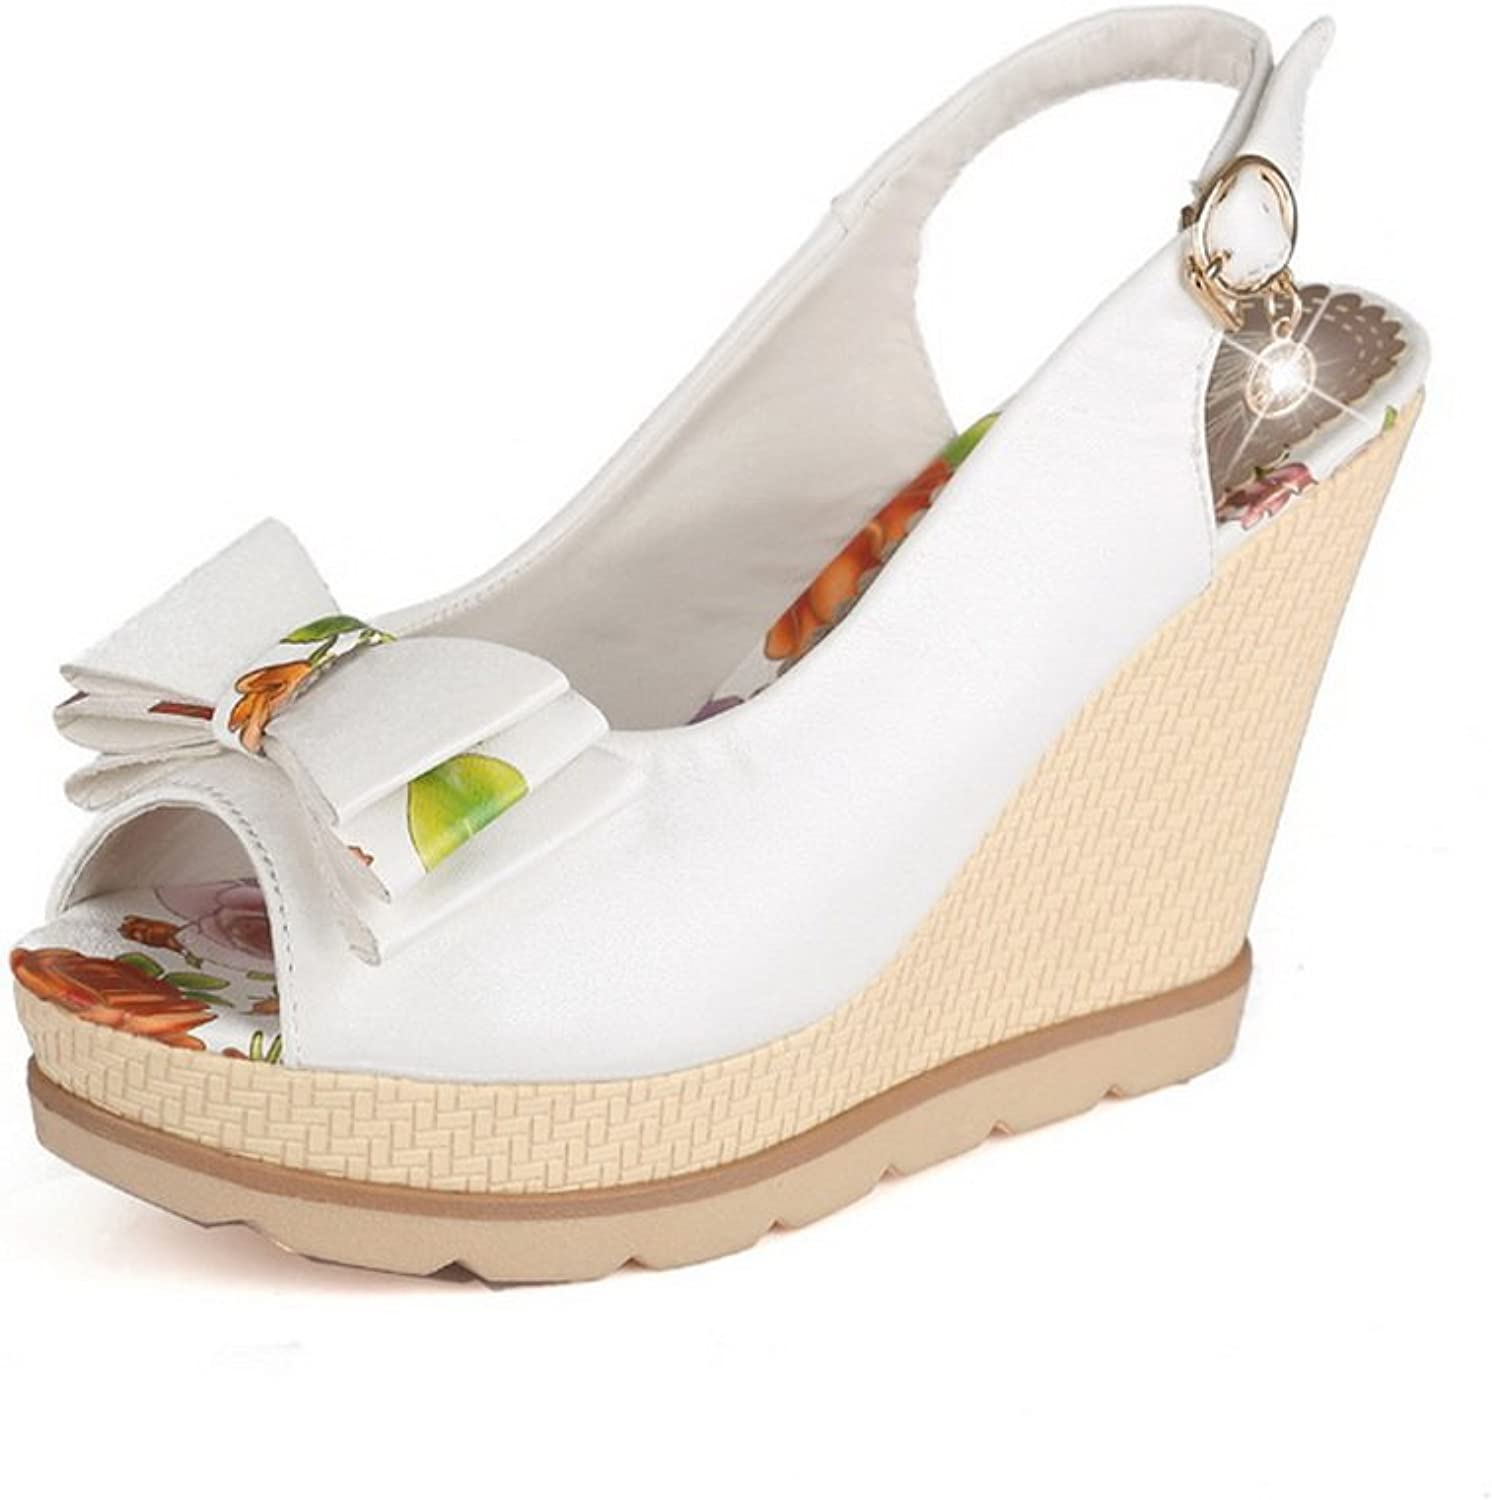 1TO9 Ladies Spun gold Bowknot Wedges White Soft Material Sandals - 8.5 B(M) US